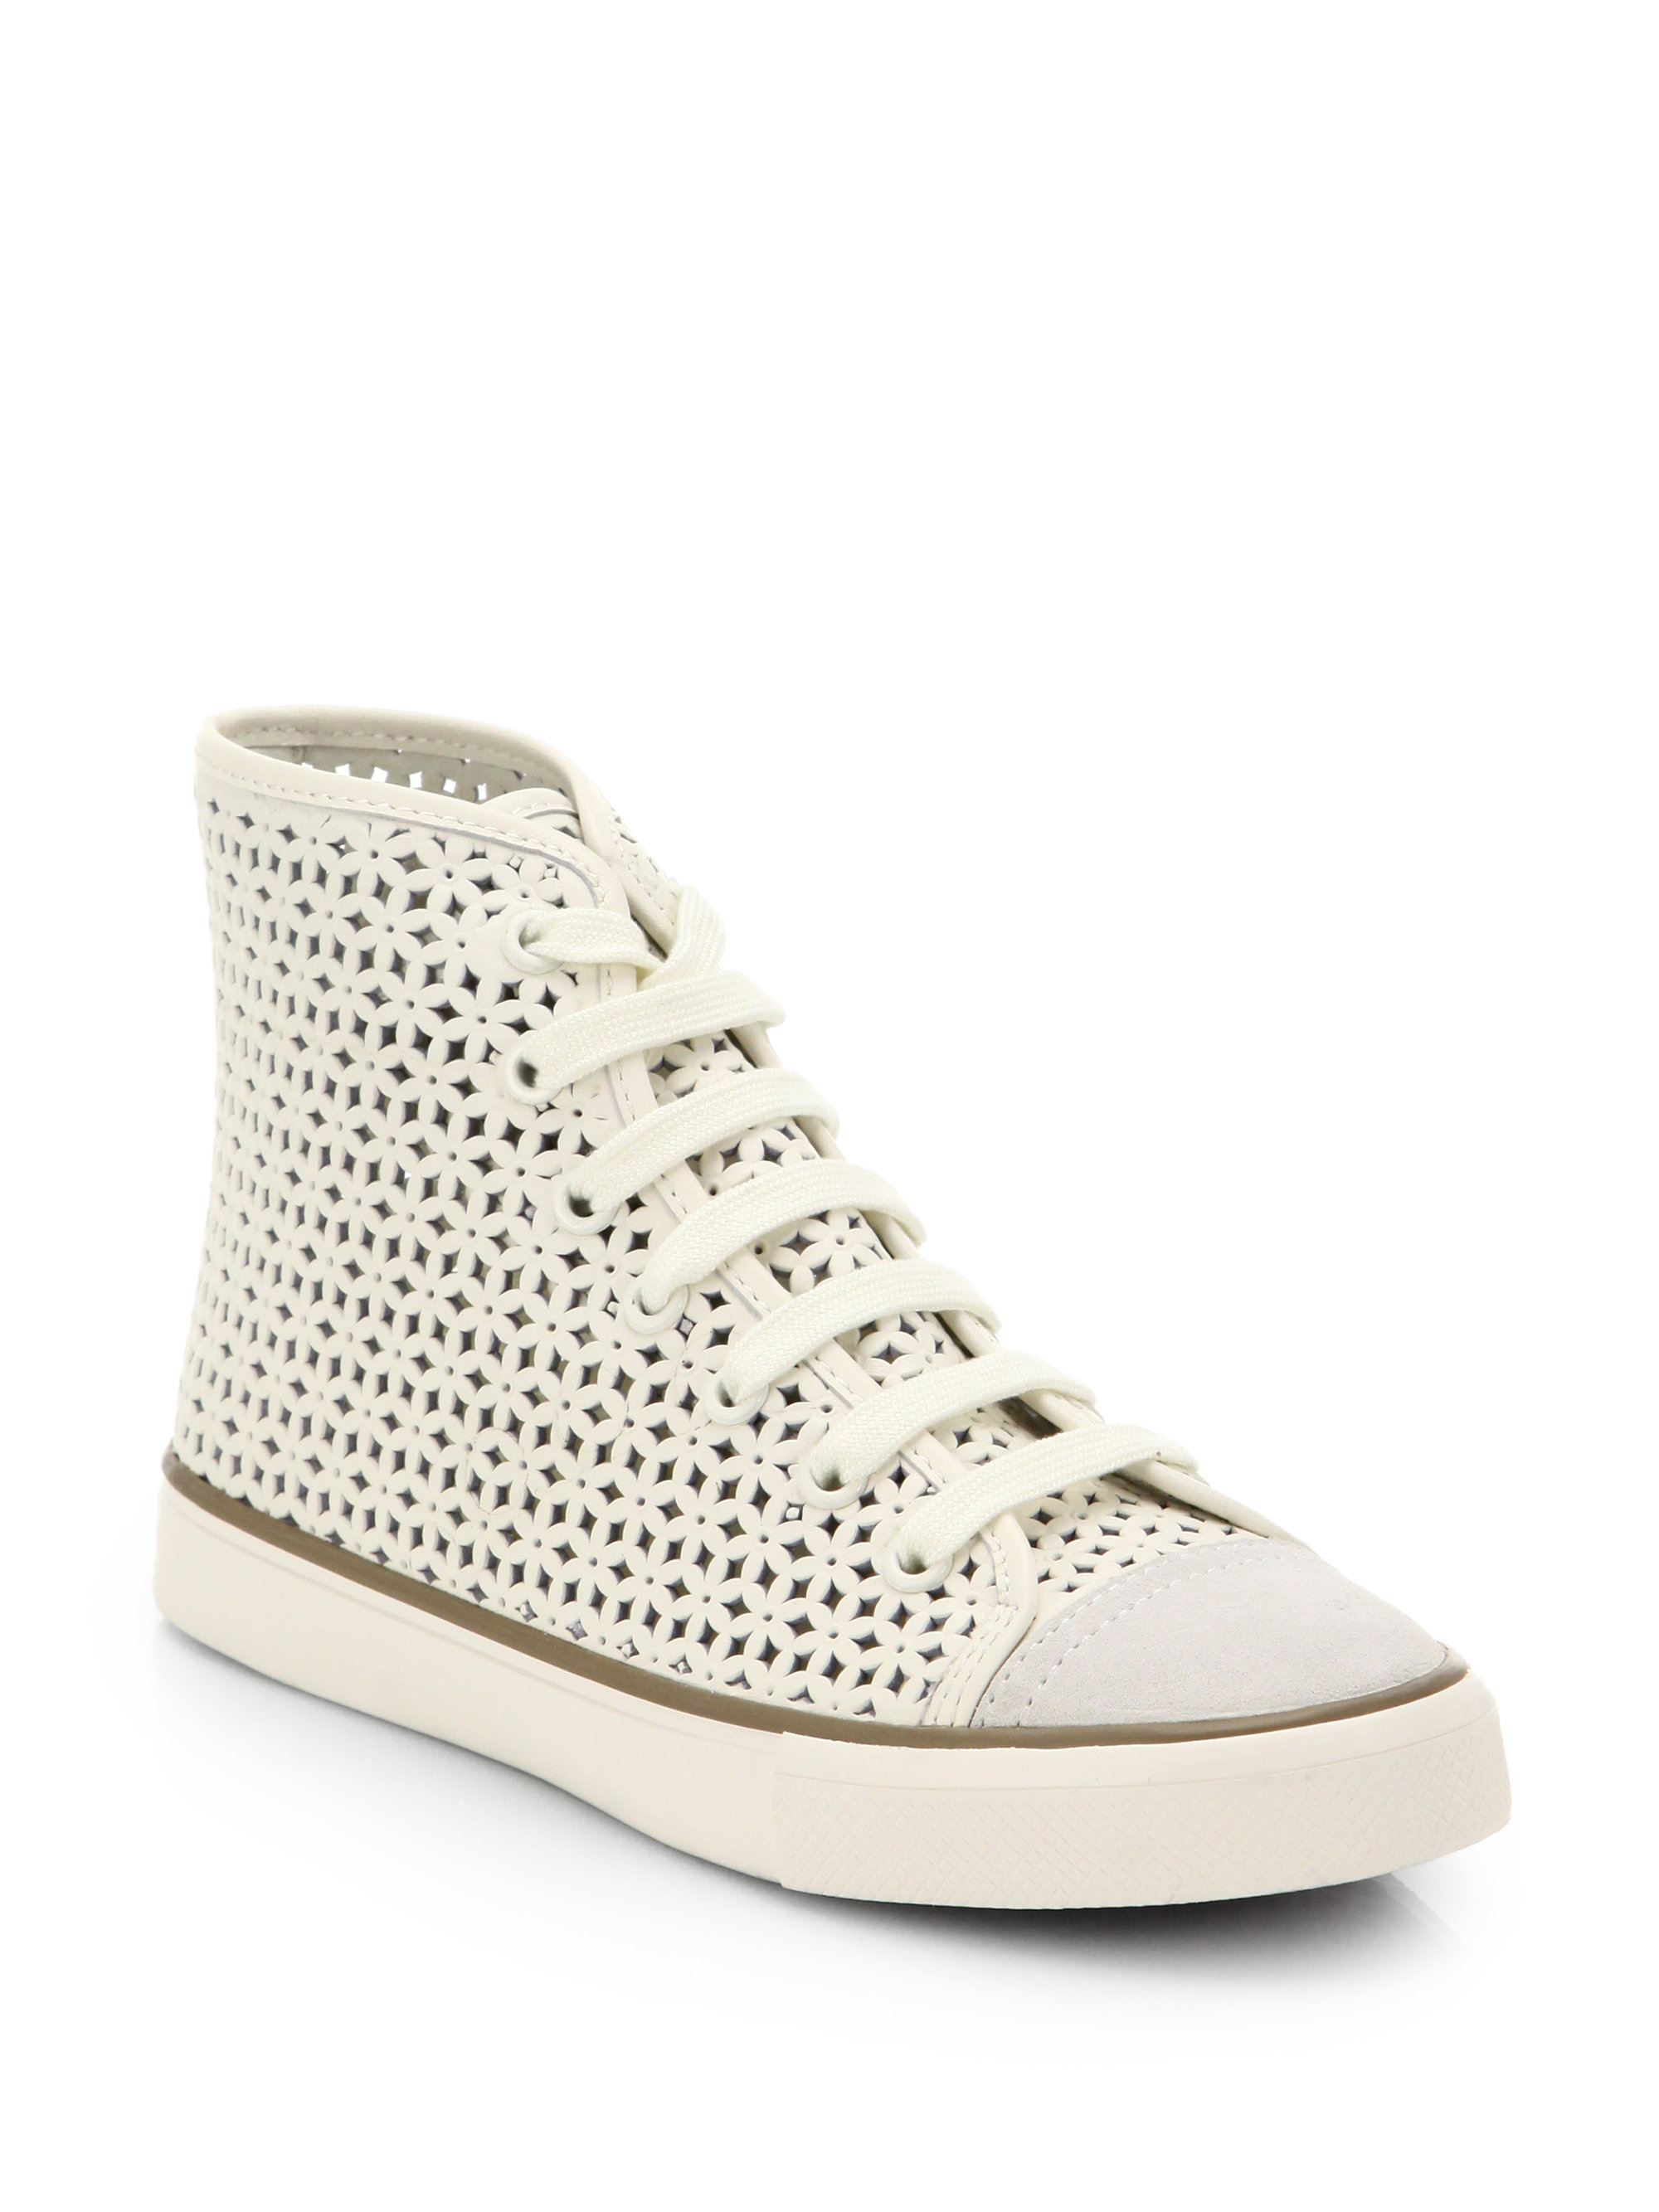 cheap price Tory Burch Daisy Laser Cut Sneakers online Shop for cheap online original for sale ulZlrQ